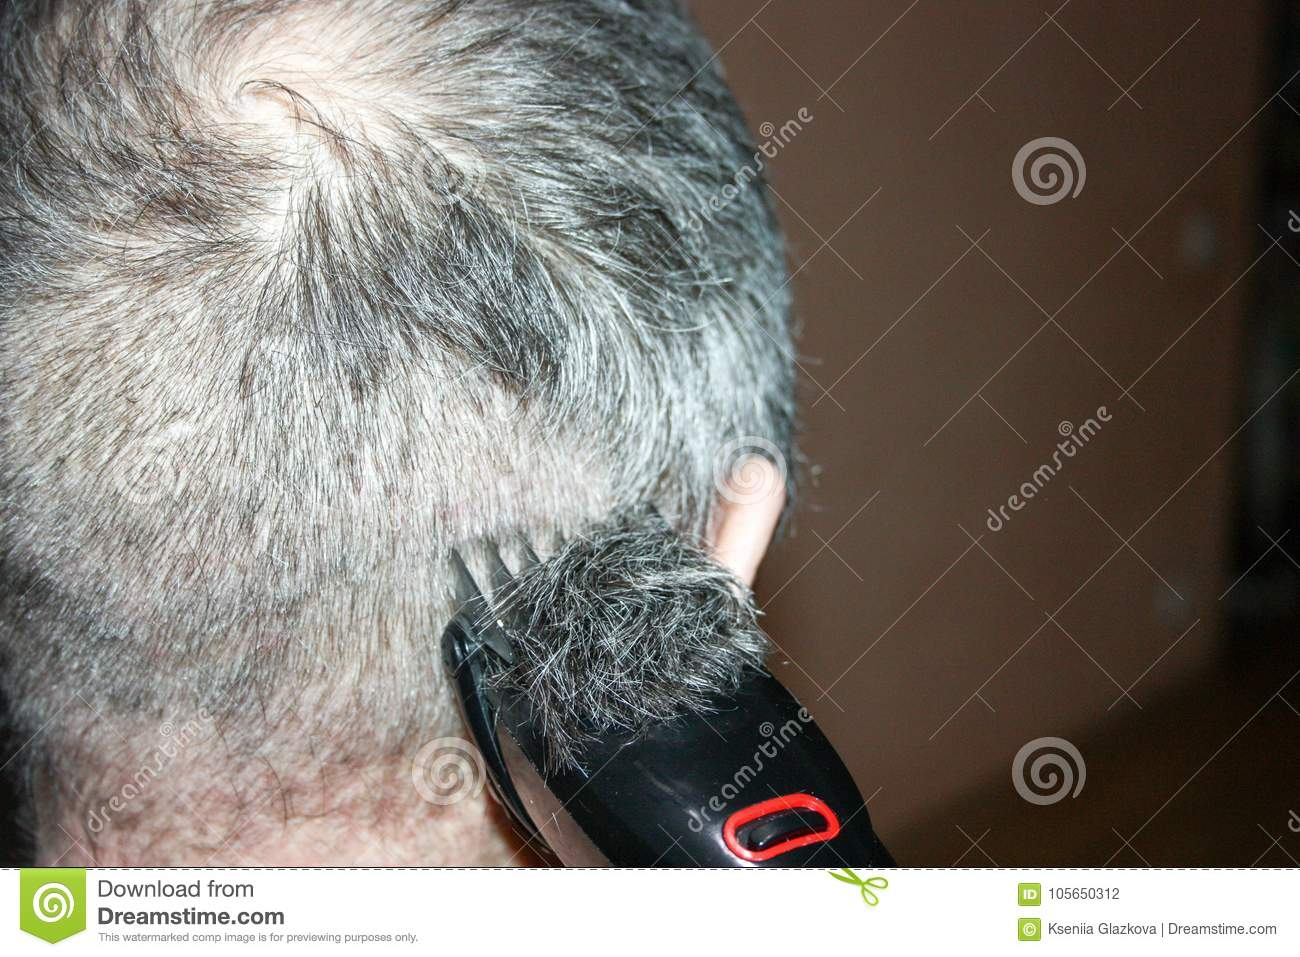 A Hairstyle For Men Under Zero With Stock Photo Image Of Clippers